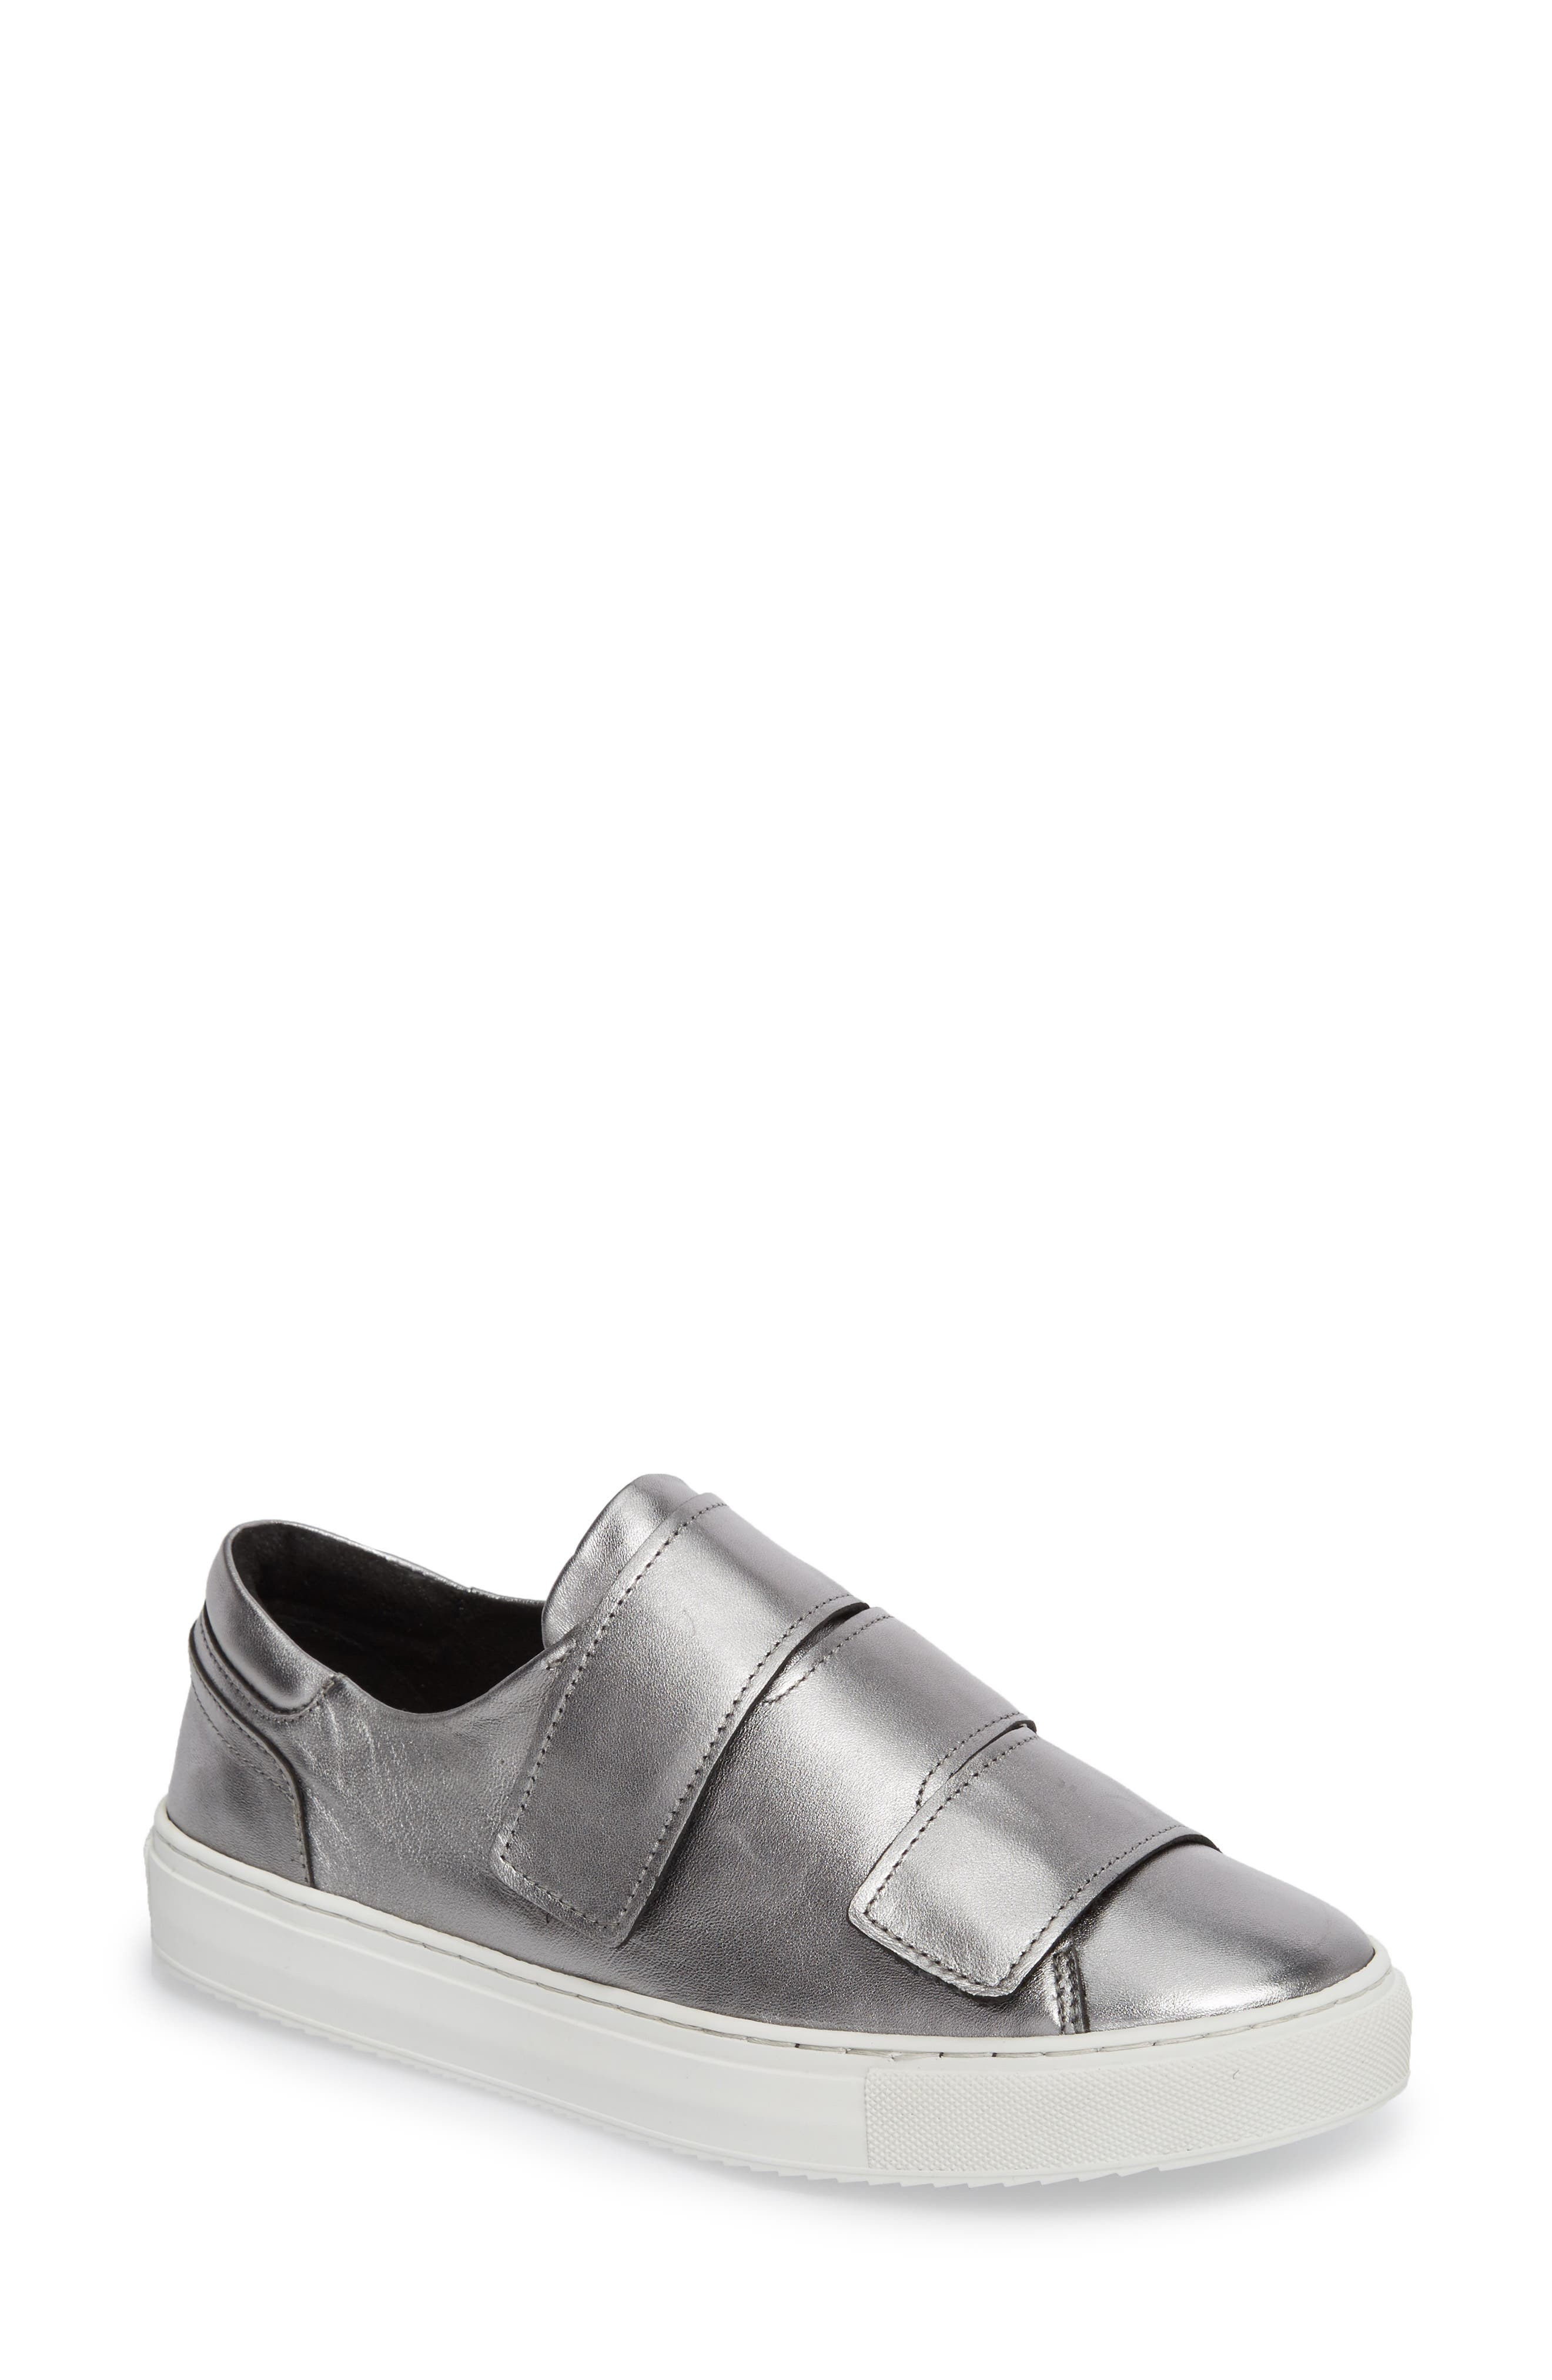 Rollover Alternating Strap Sneaker,                         Main,                         color, Pewter Leather